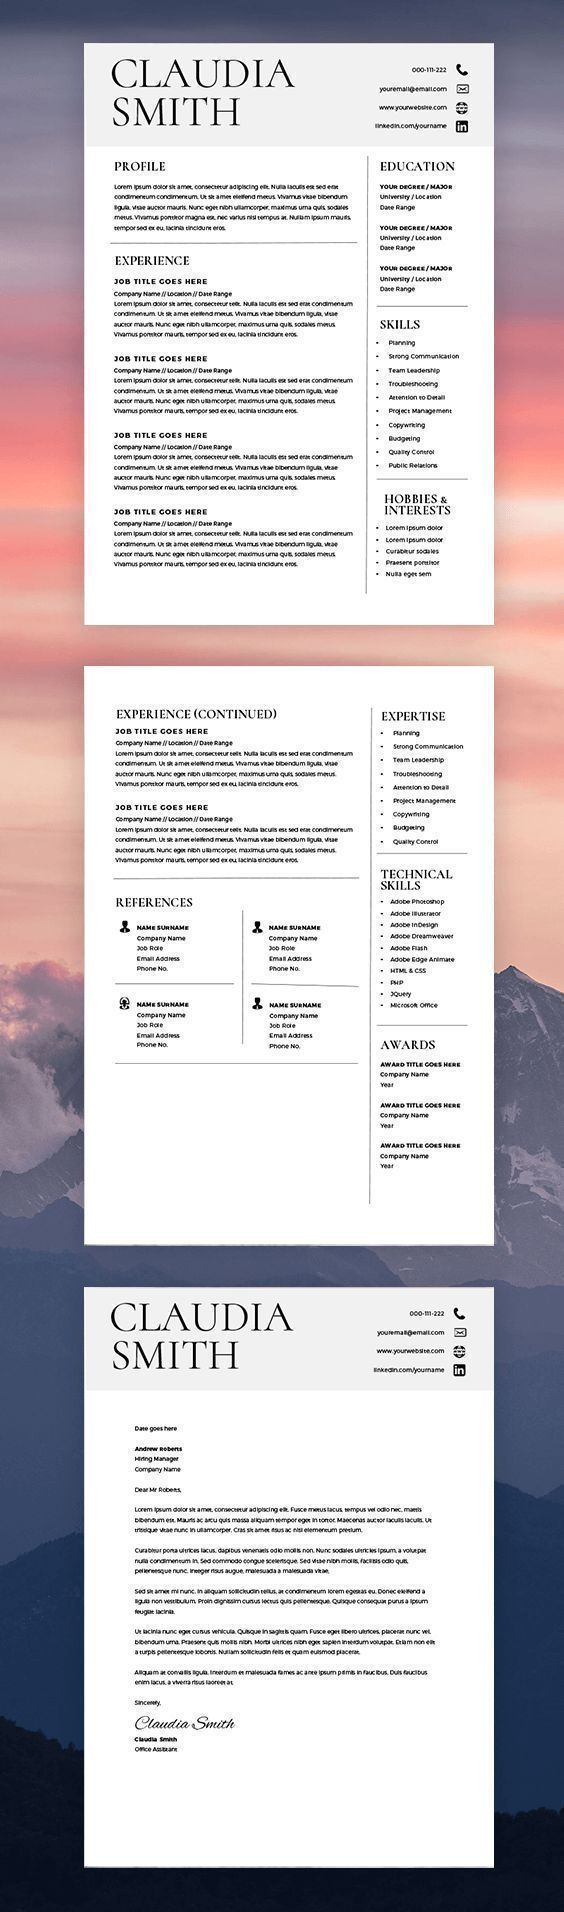 Word Cv Templates 2007%0A Medical Resume Template Word  Minimalist Resume  FREE Cover Letter  Resume  Template Word Mac